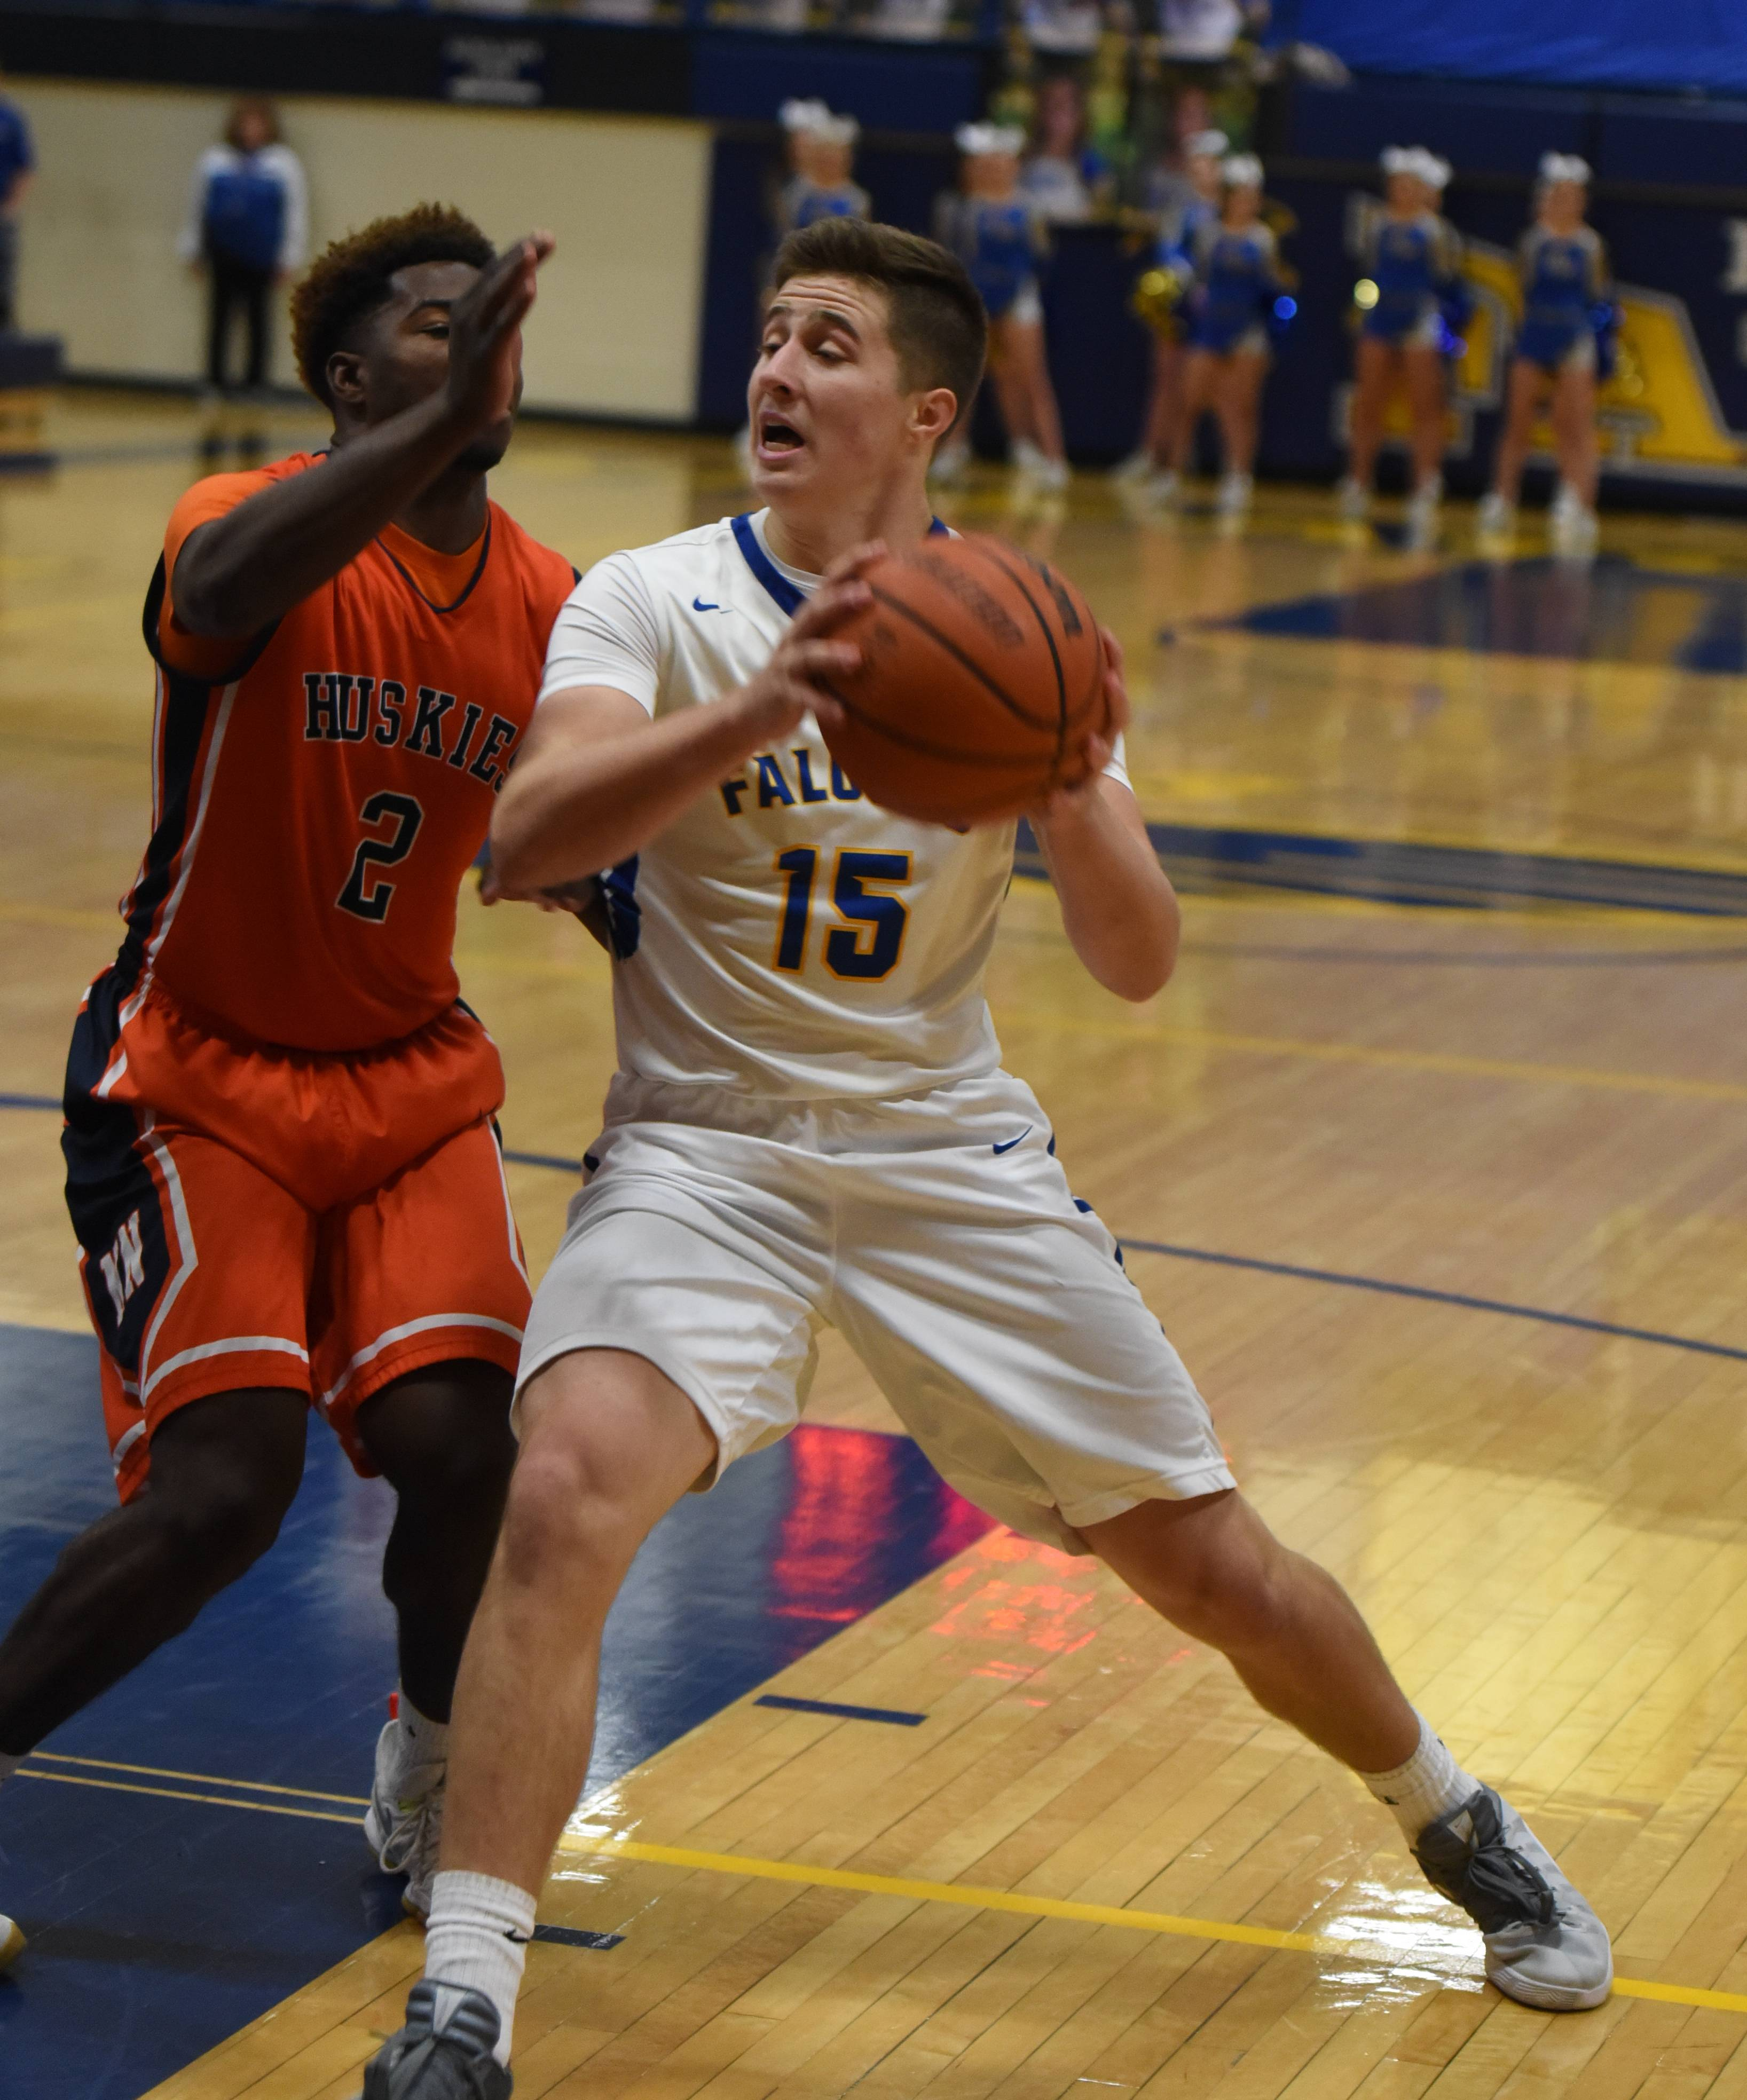 Images from the Naperville North vs. Wheaton North boys basketball game on December 9, 2016 in Wheaton.